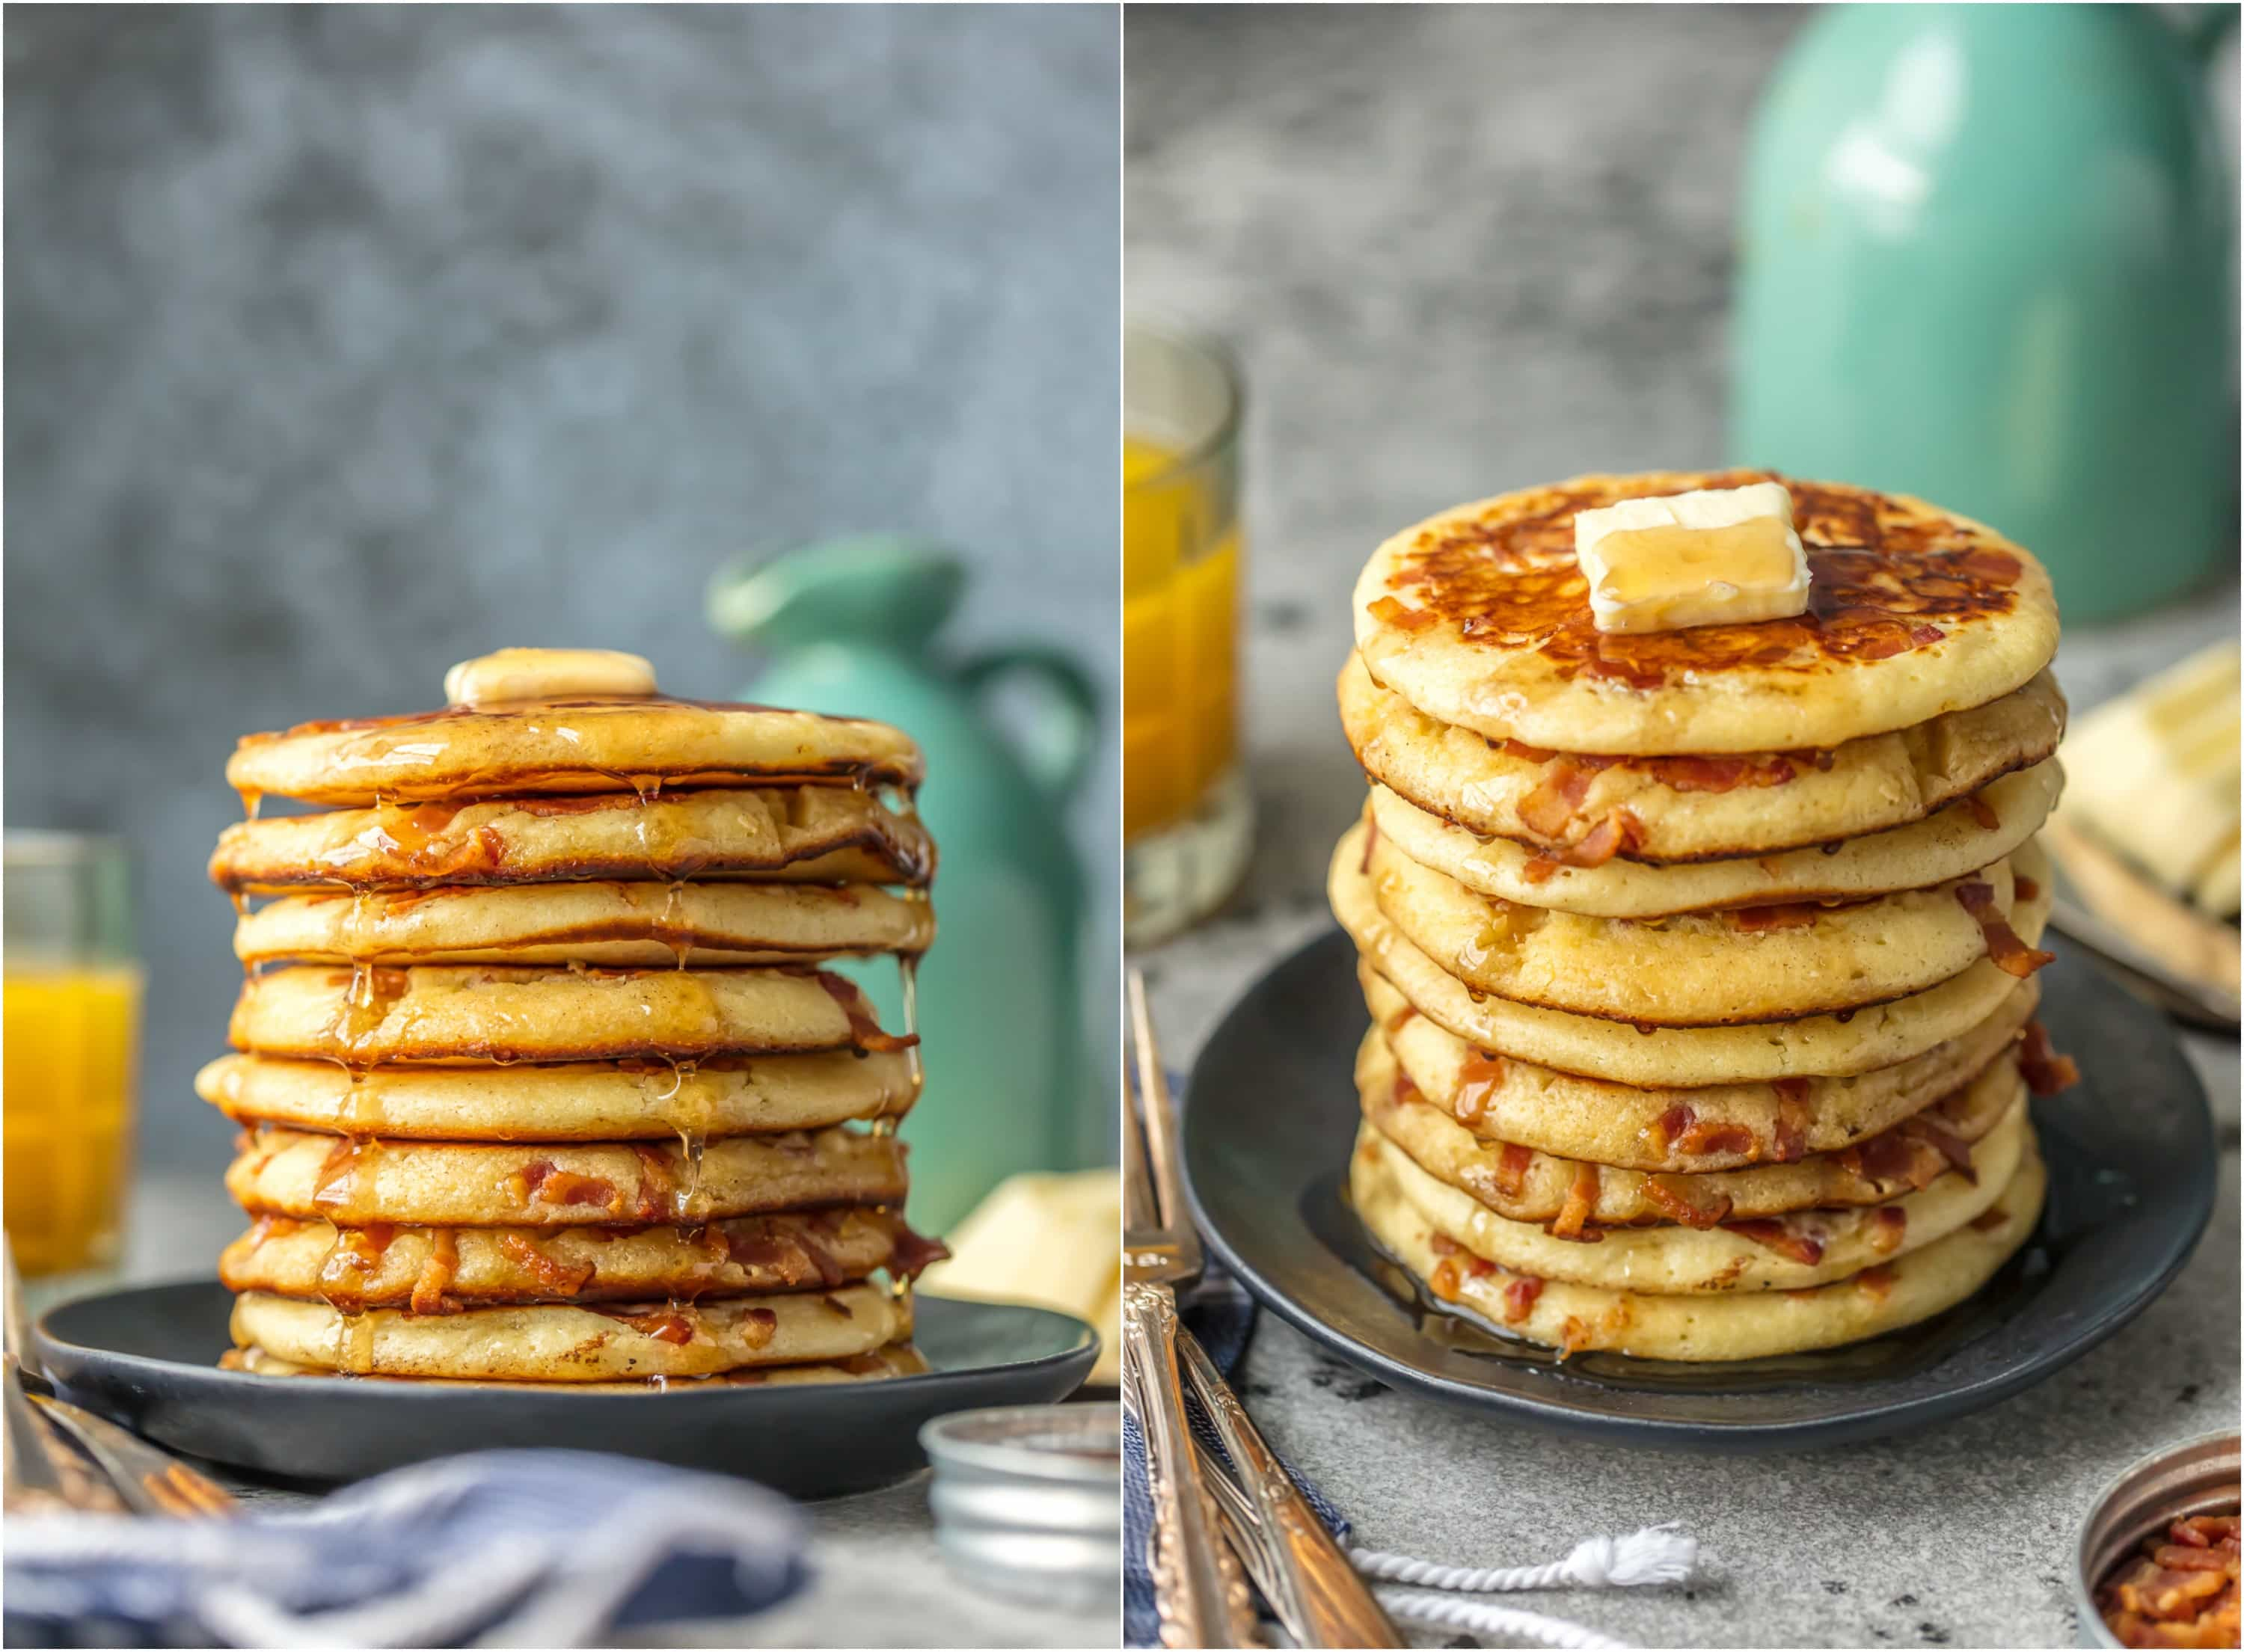 These BACON PANCAKES have been a family favorite for years! We first had these savory pancakes stuffed with bacon bits at the Calgary Stampede in Canada and have been making them ever since. The savory/sweet combo just can't be beat!